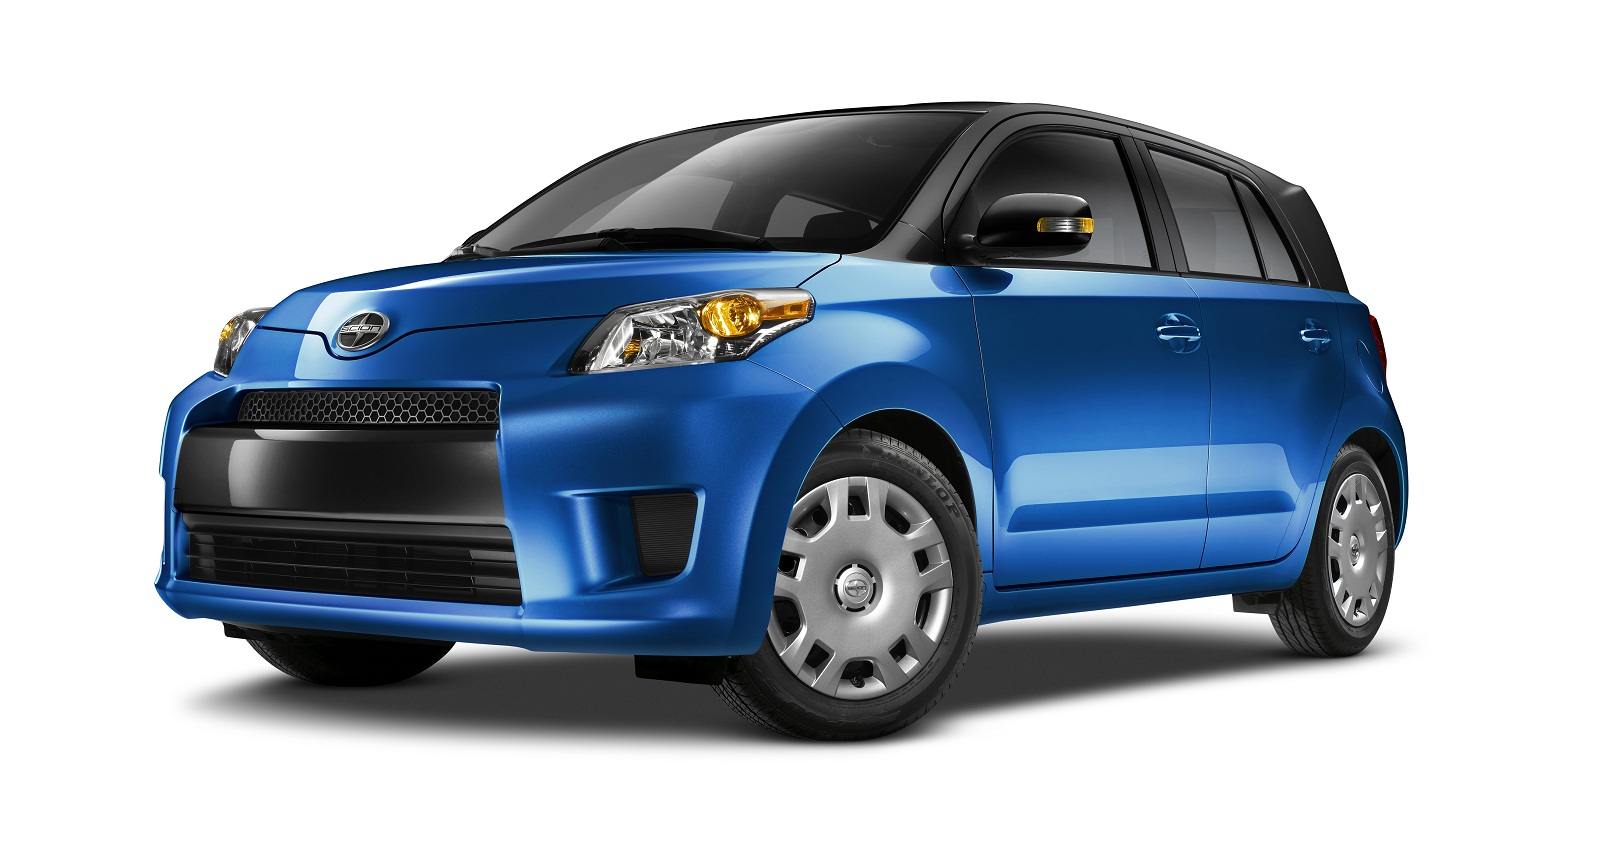 Bmw Of Fresno >> 2014 Scion xD Review, Ratings, Specs, Prices, and Photos - The Car Connection